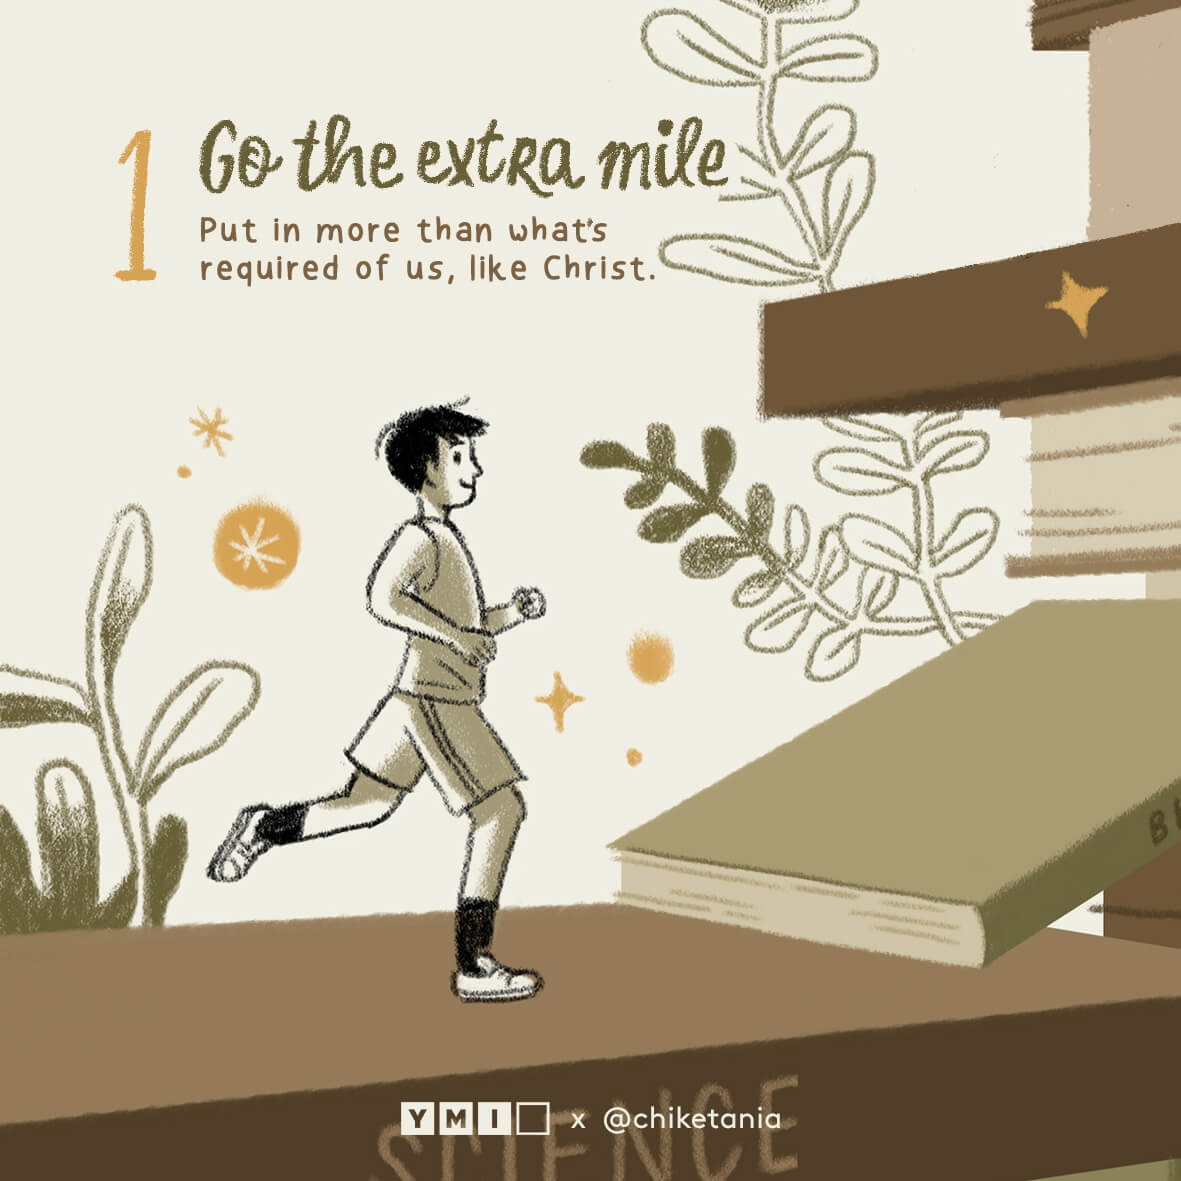 graphic image of a boy running with text of go the extra mile